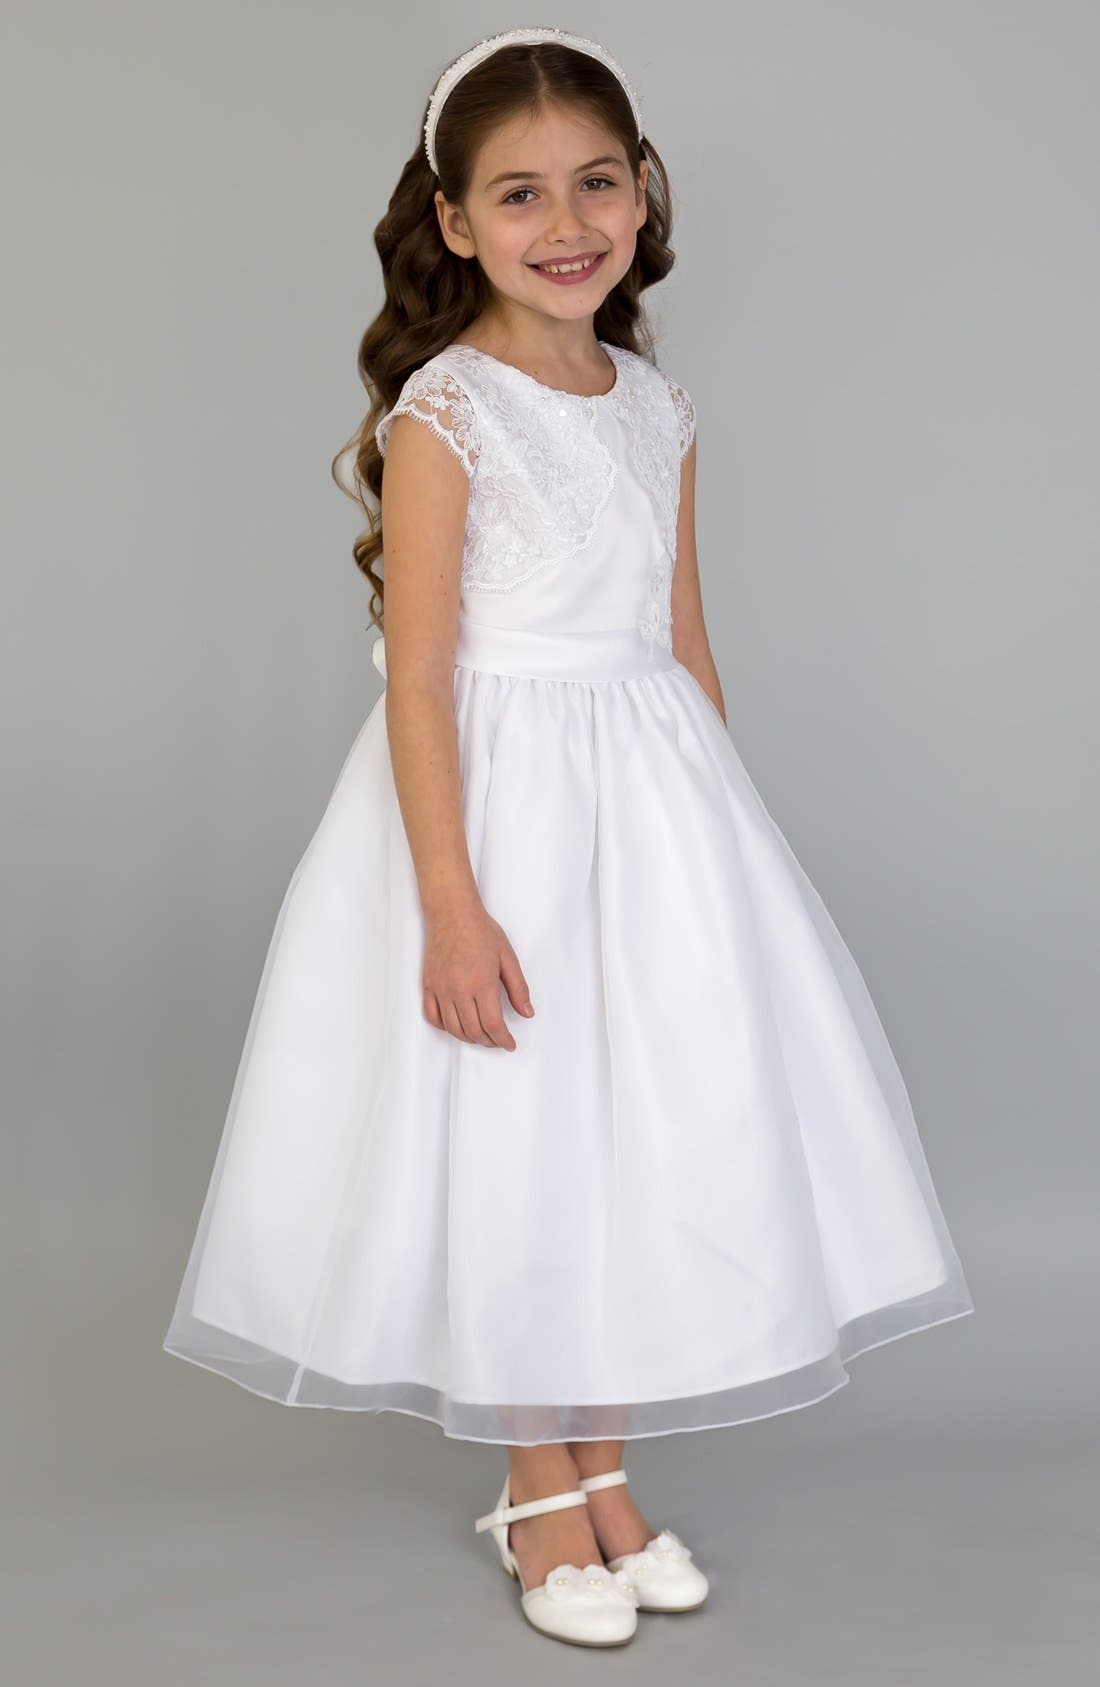 Main Image - Us Angels Lace Fit & Flare Dress (Little Girls, Big Girls & Girls' Plus)